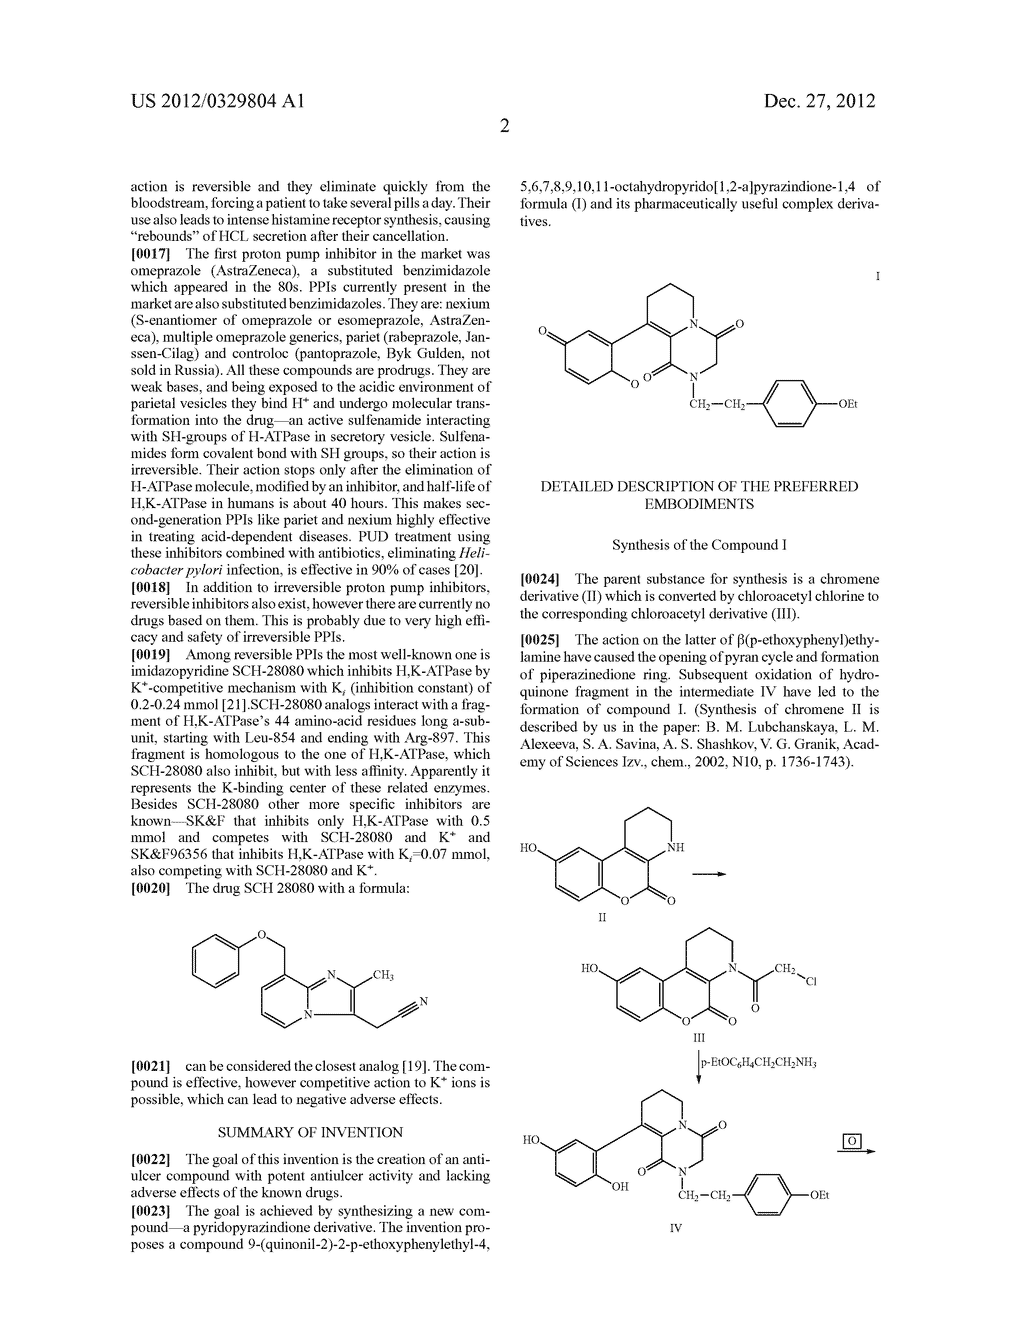 Pyridopyrazindione Derivative and its Use as an Antiulcer Drug - diagram, schematic, and image 03